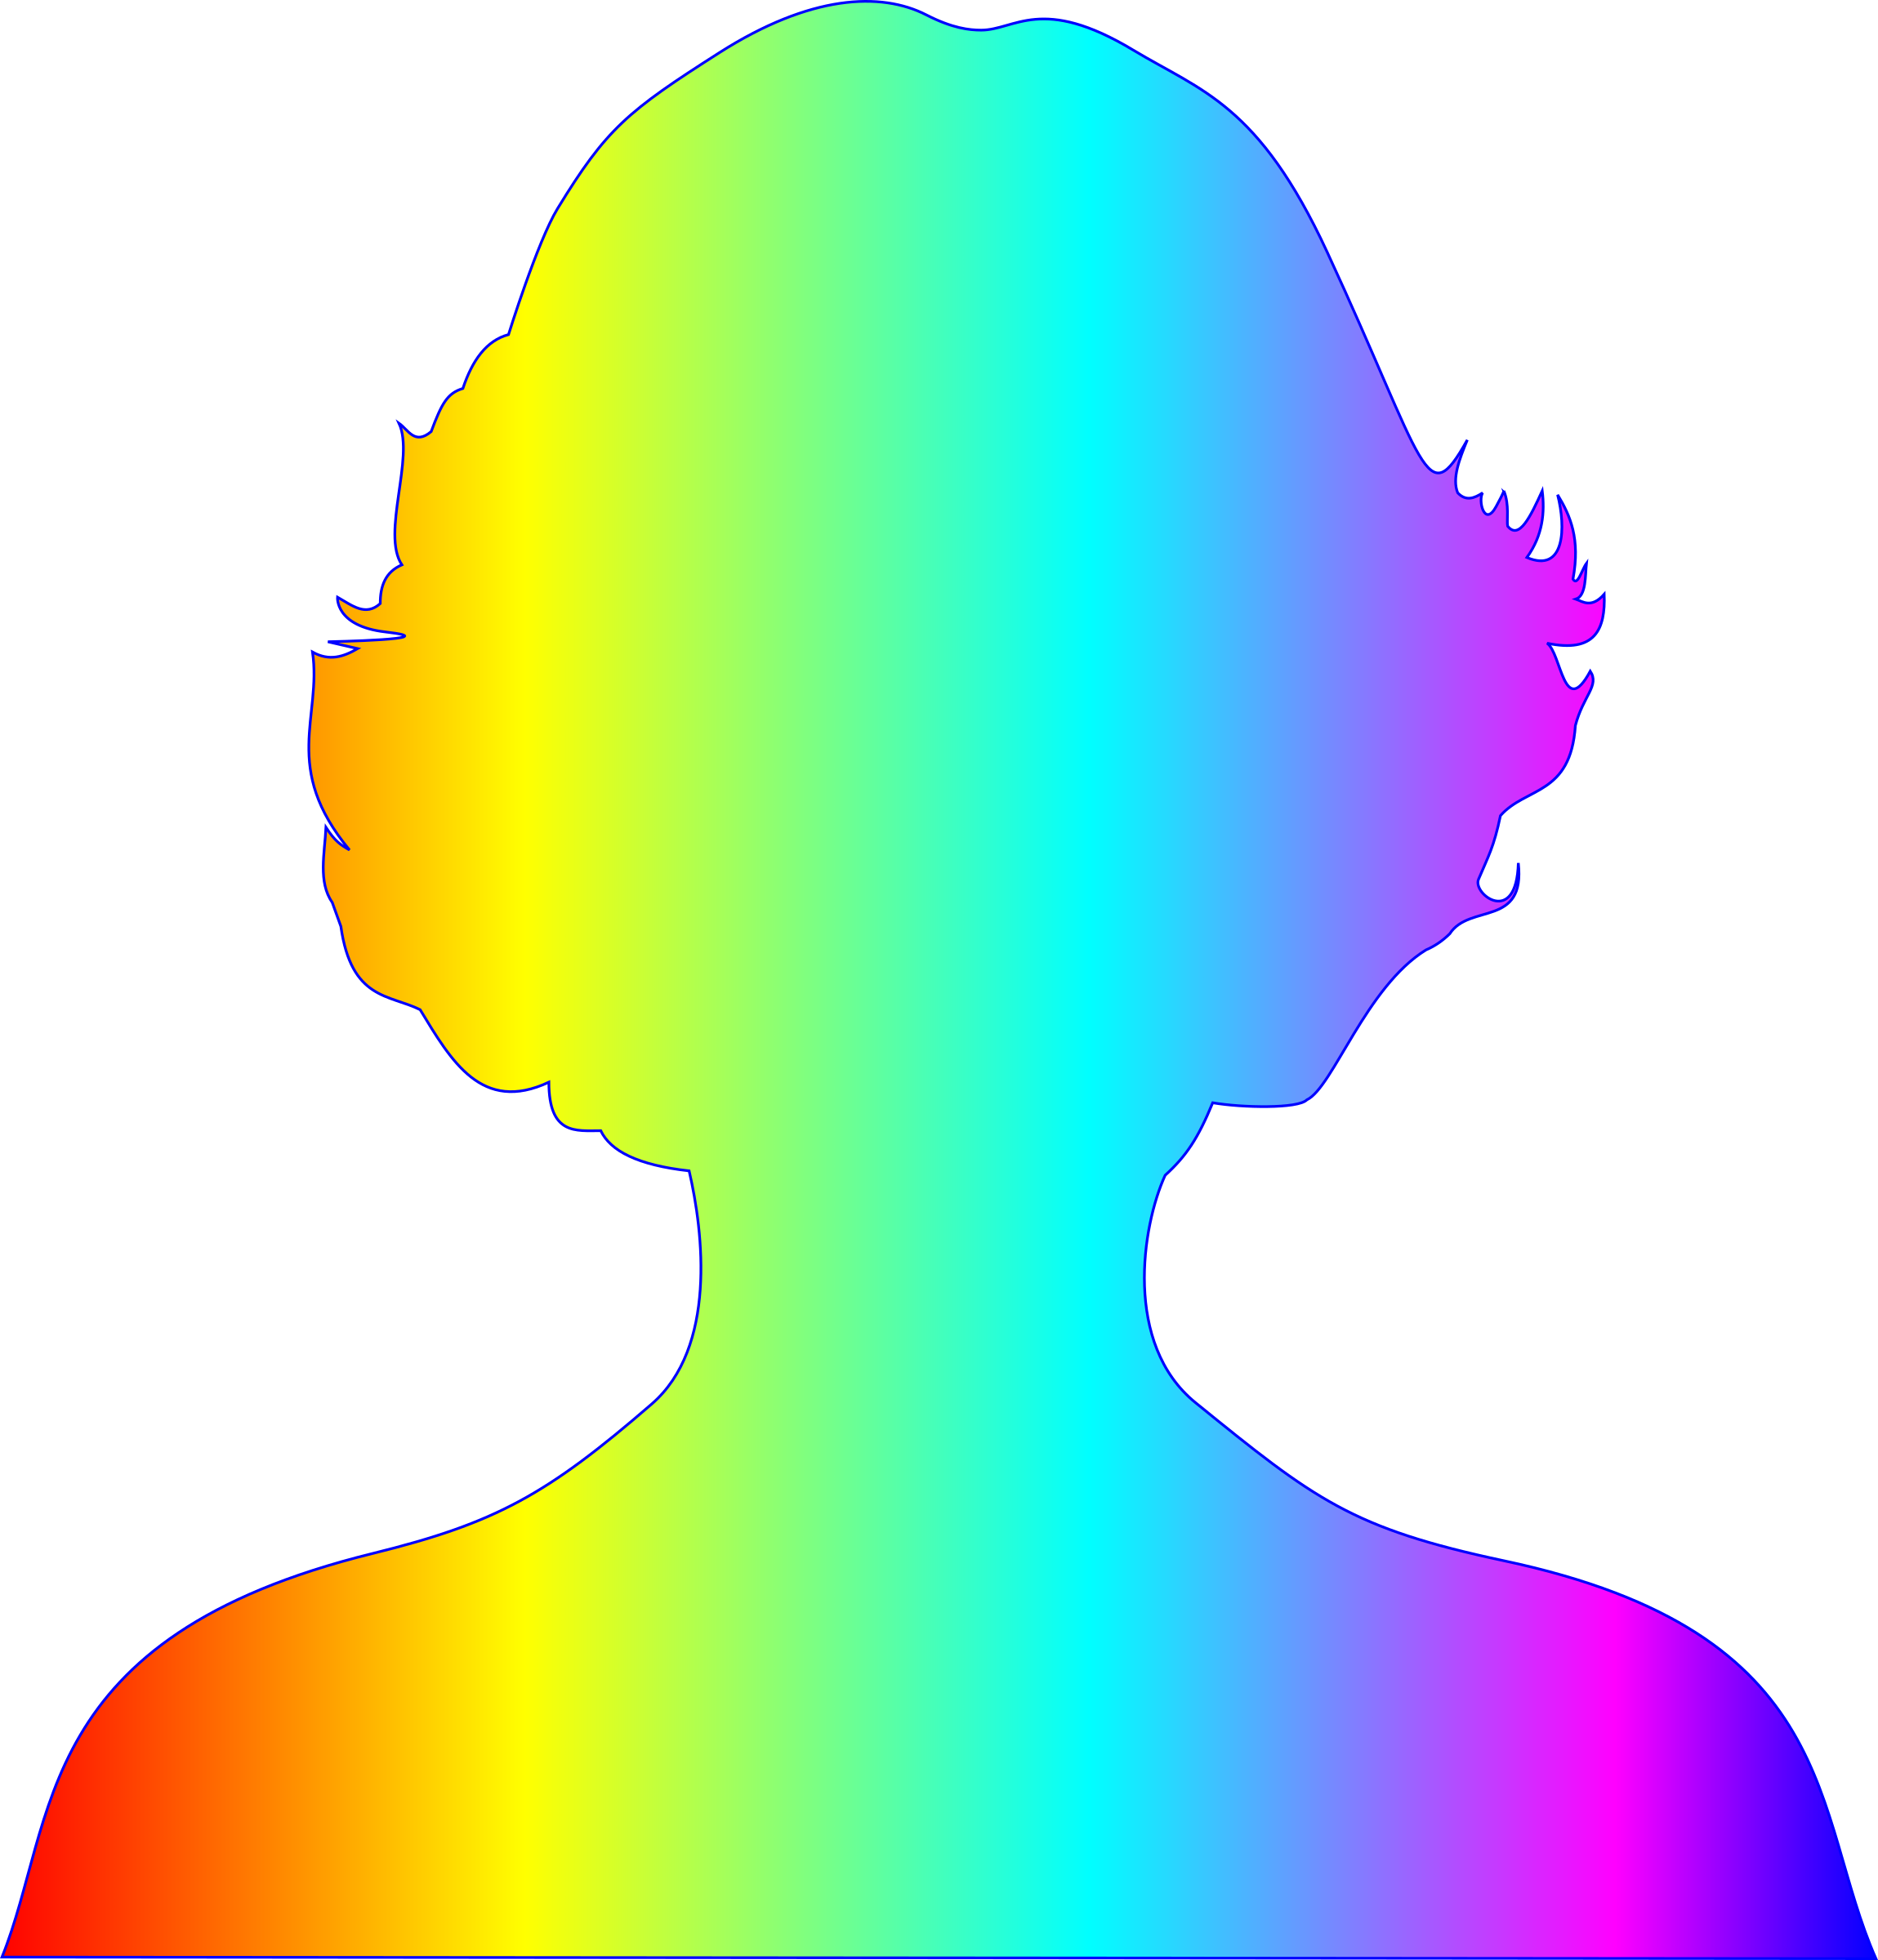 female silhouette with rainbow gradient by Manuela.